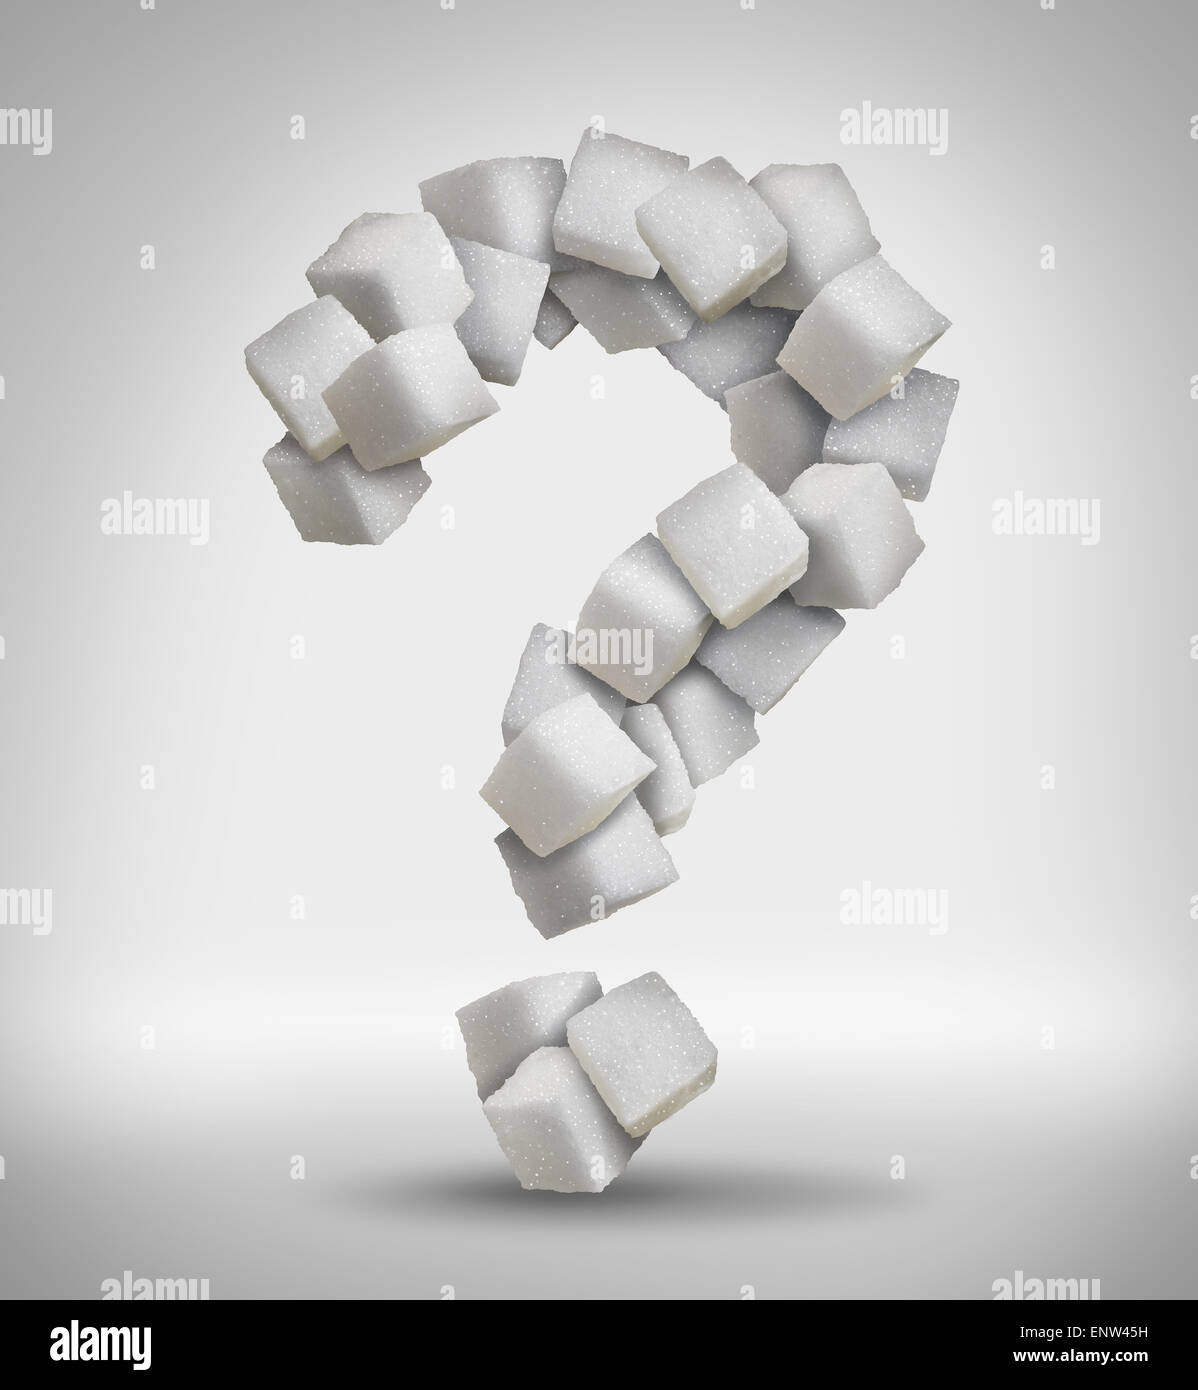 Sugar questions concept sweet food ingredient with a close up of a pile of delicious white lumps of cubes shaped - Stock Image